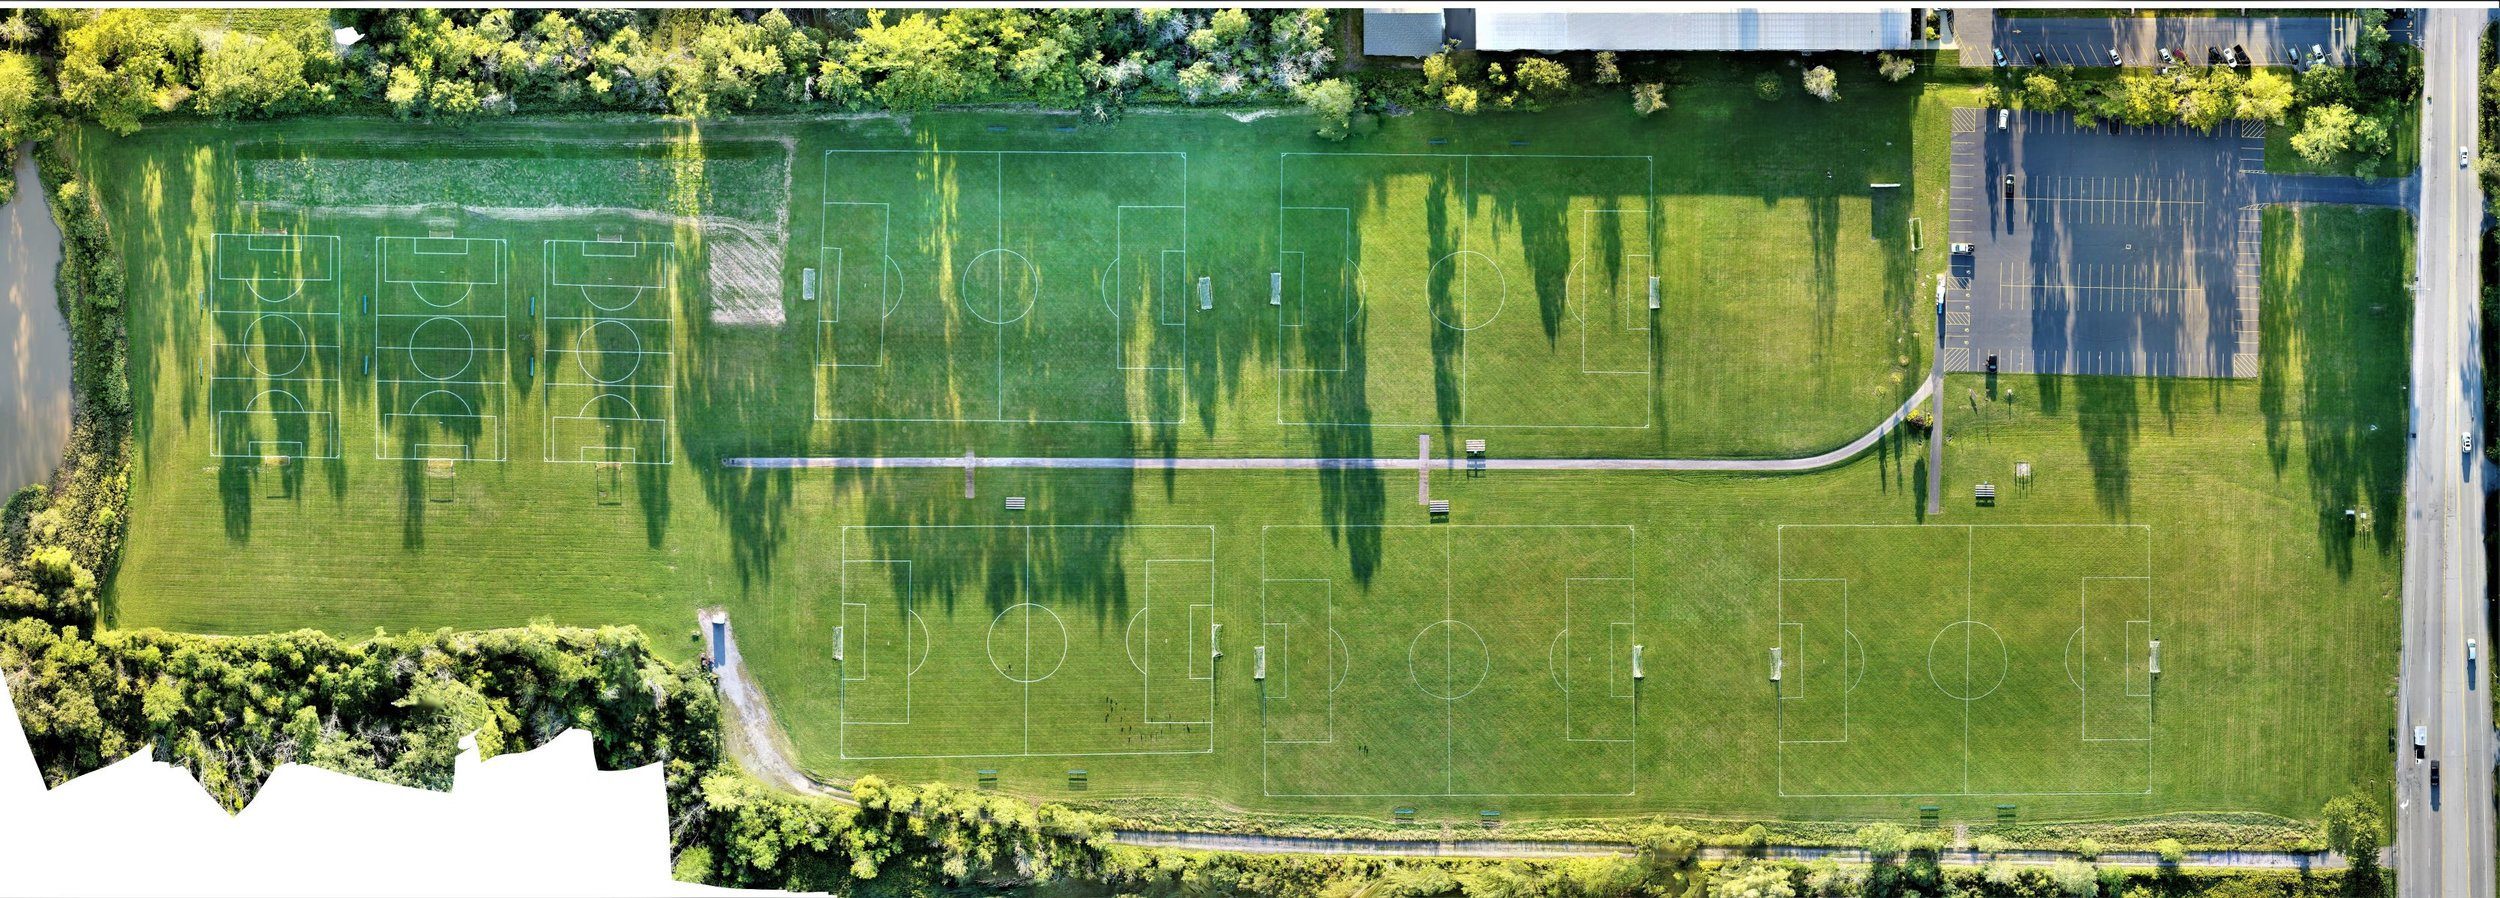 Top down view at North French Soccer Complex 9/5/19